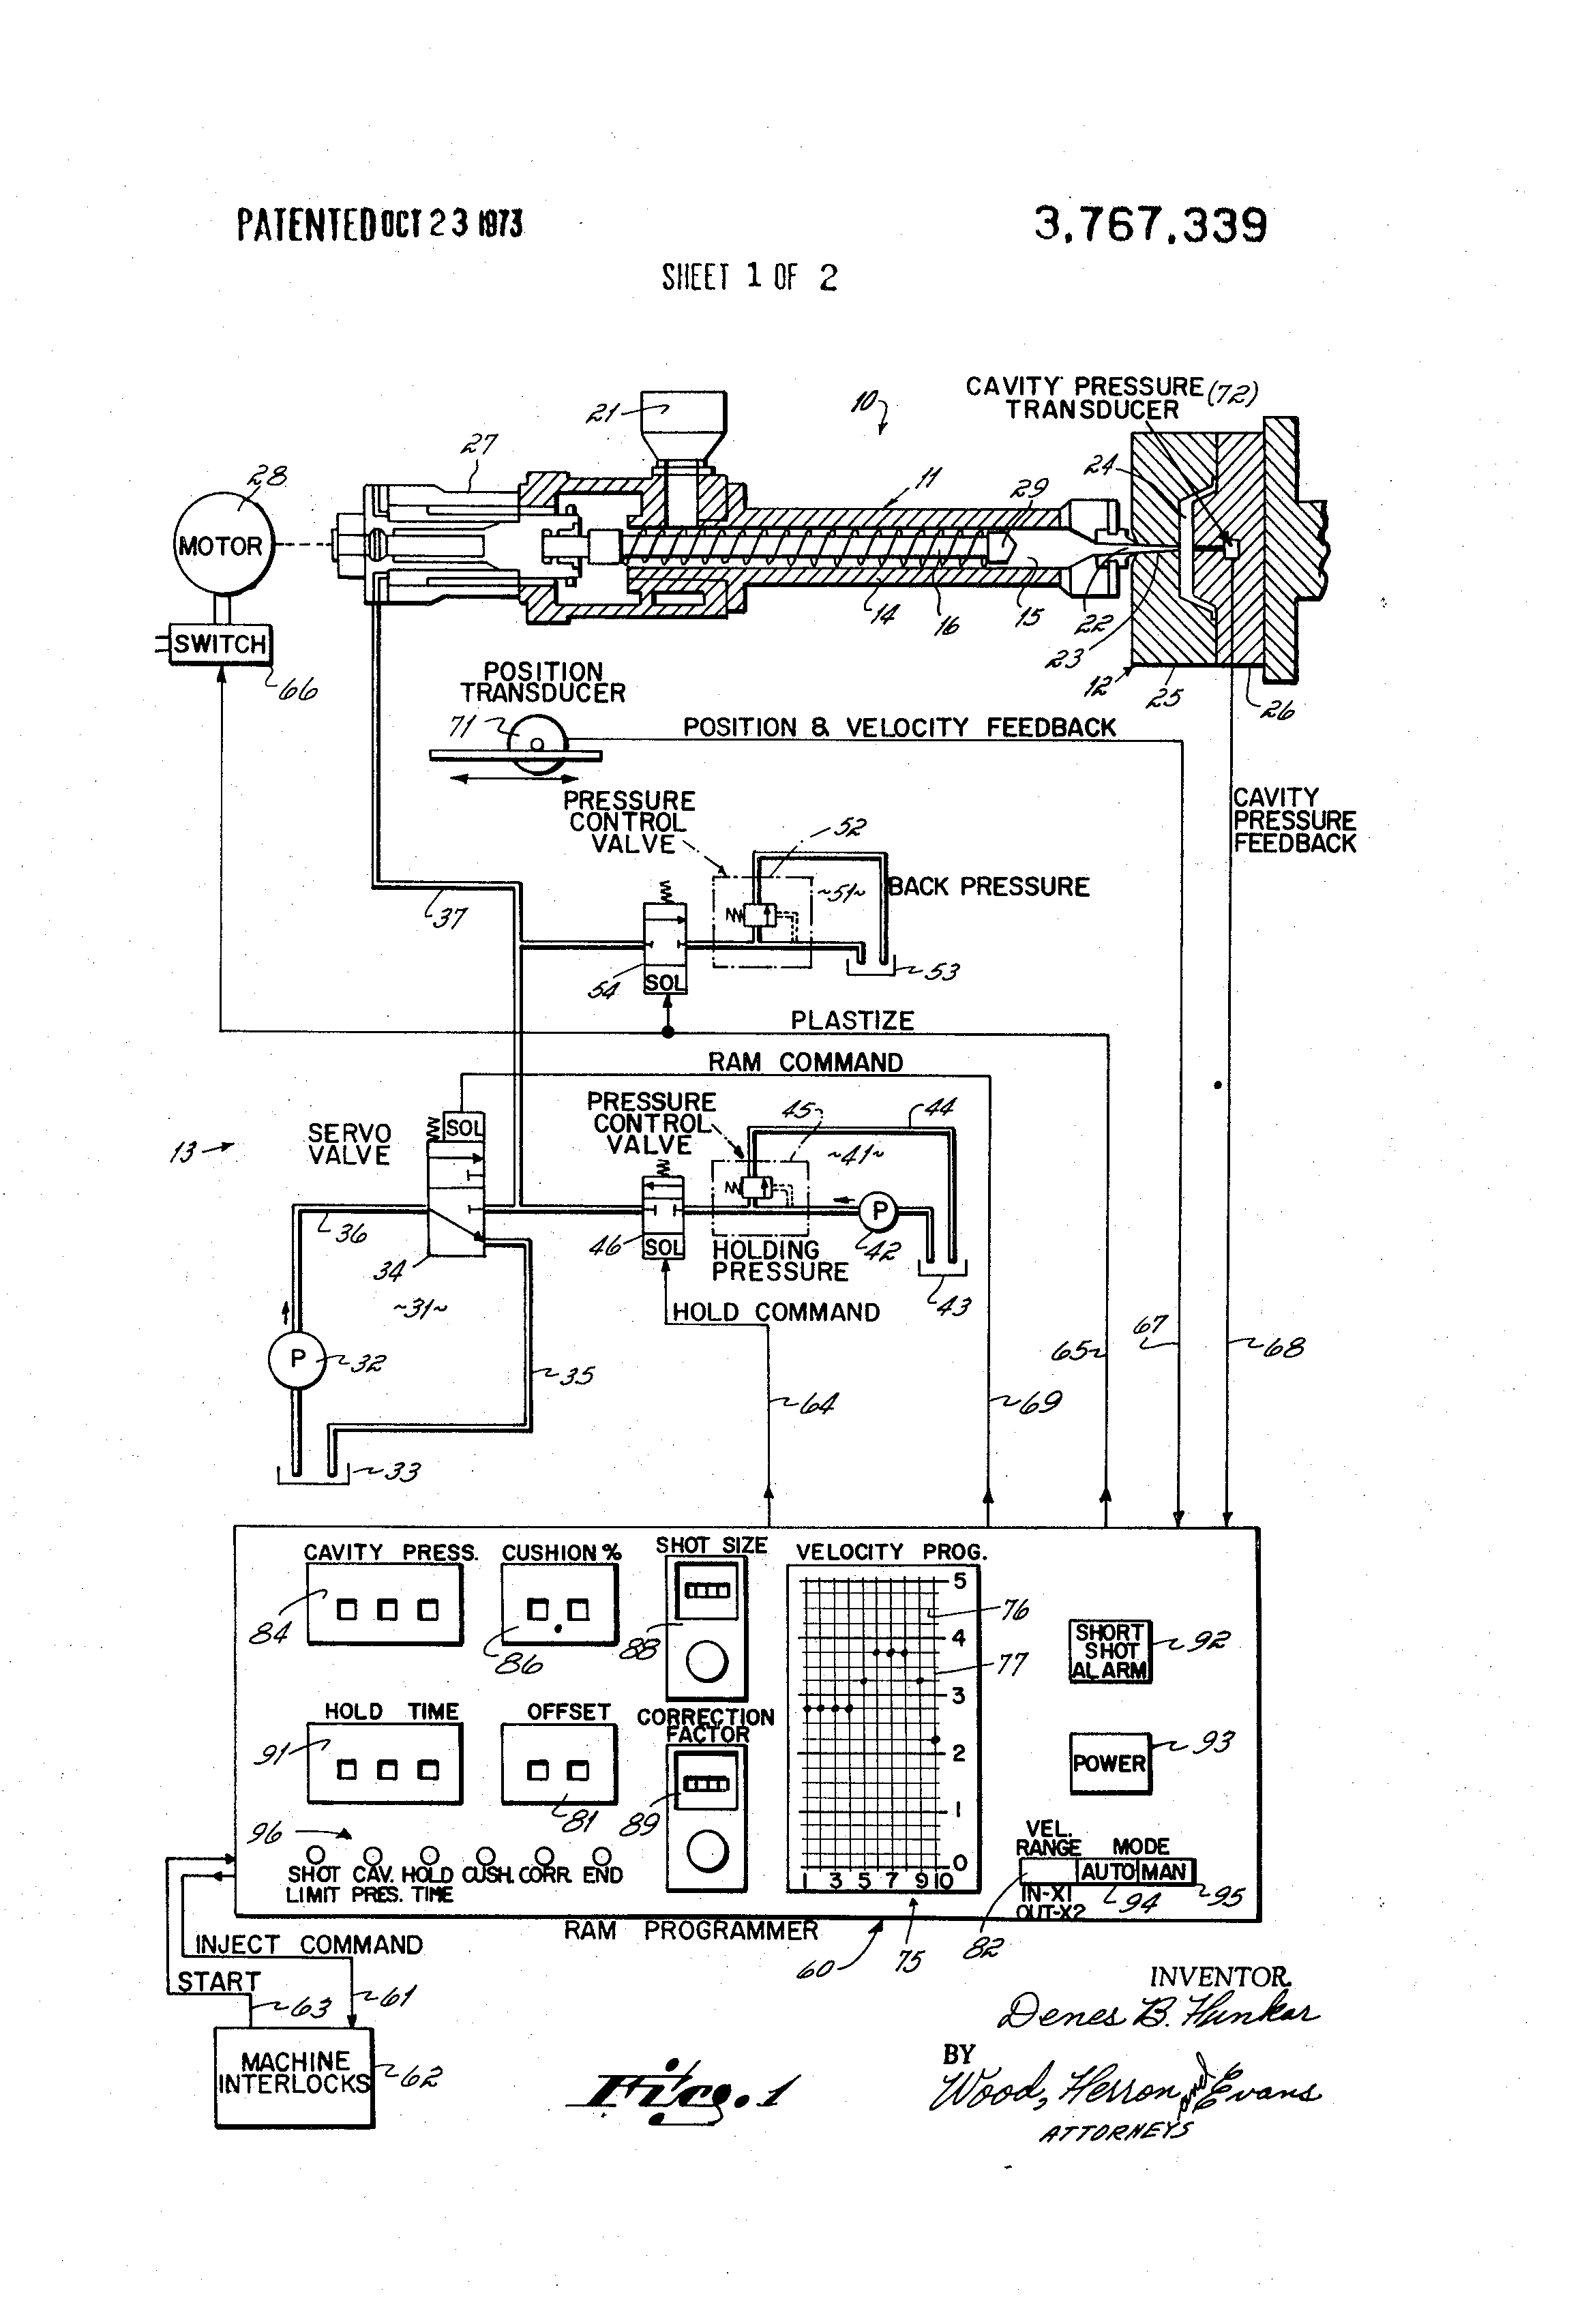 Wiring Diagram Wax Injector Qubee Quilts